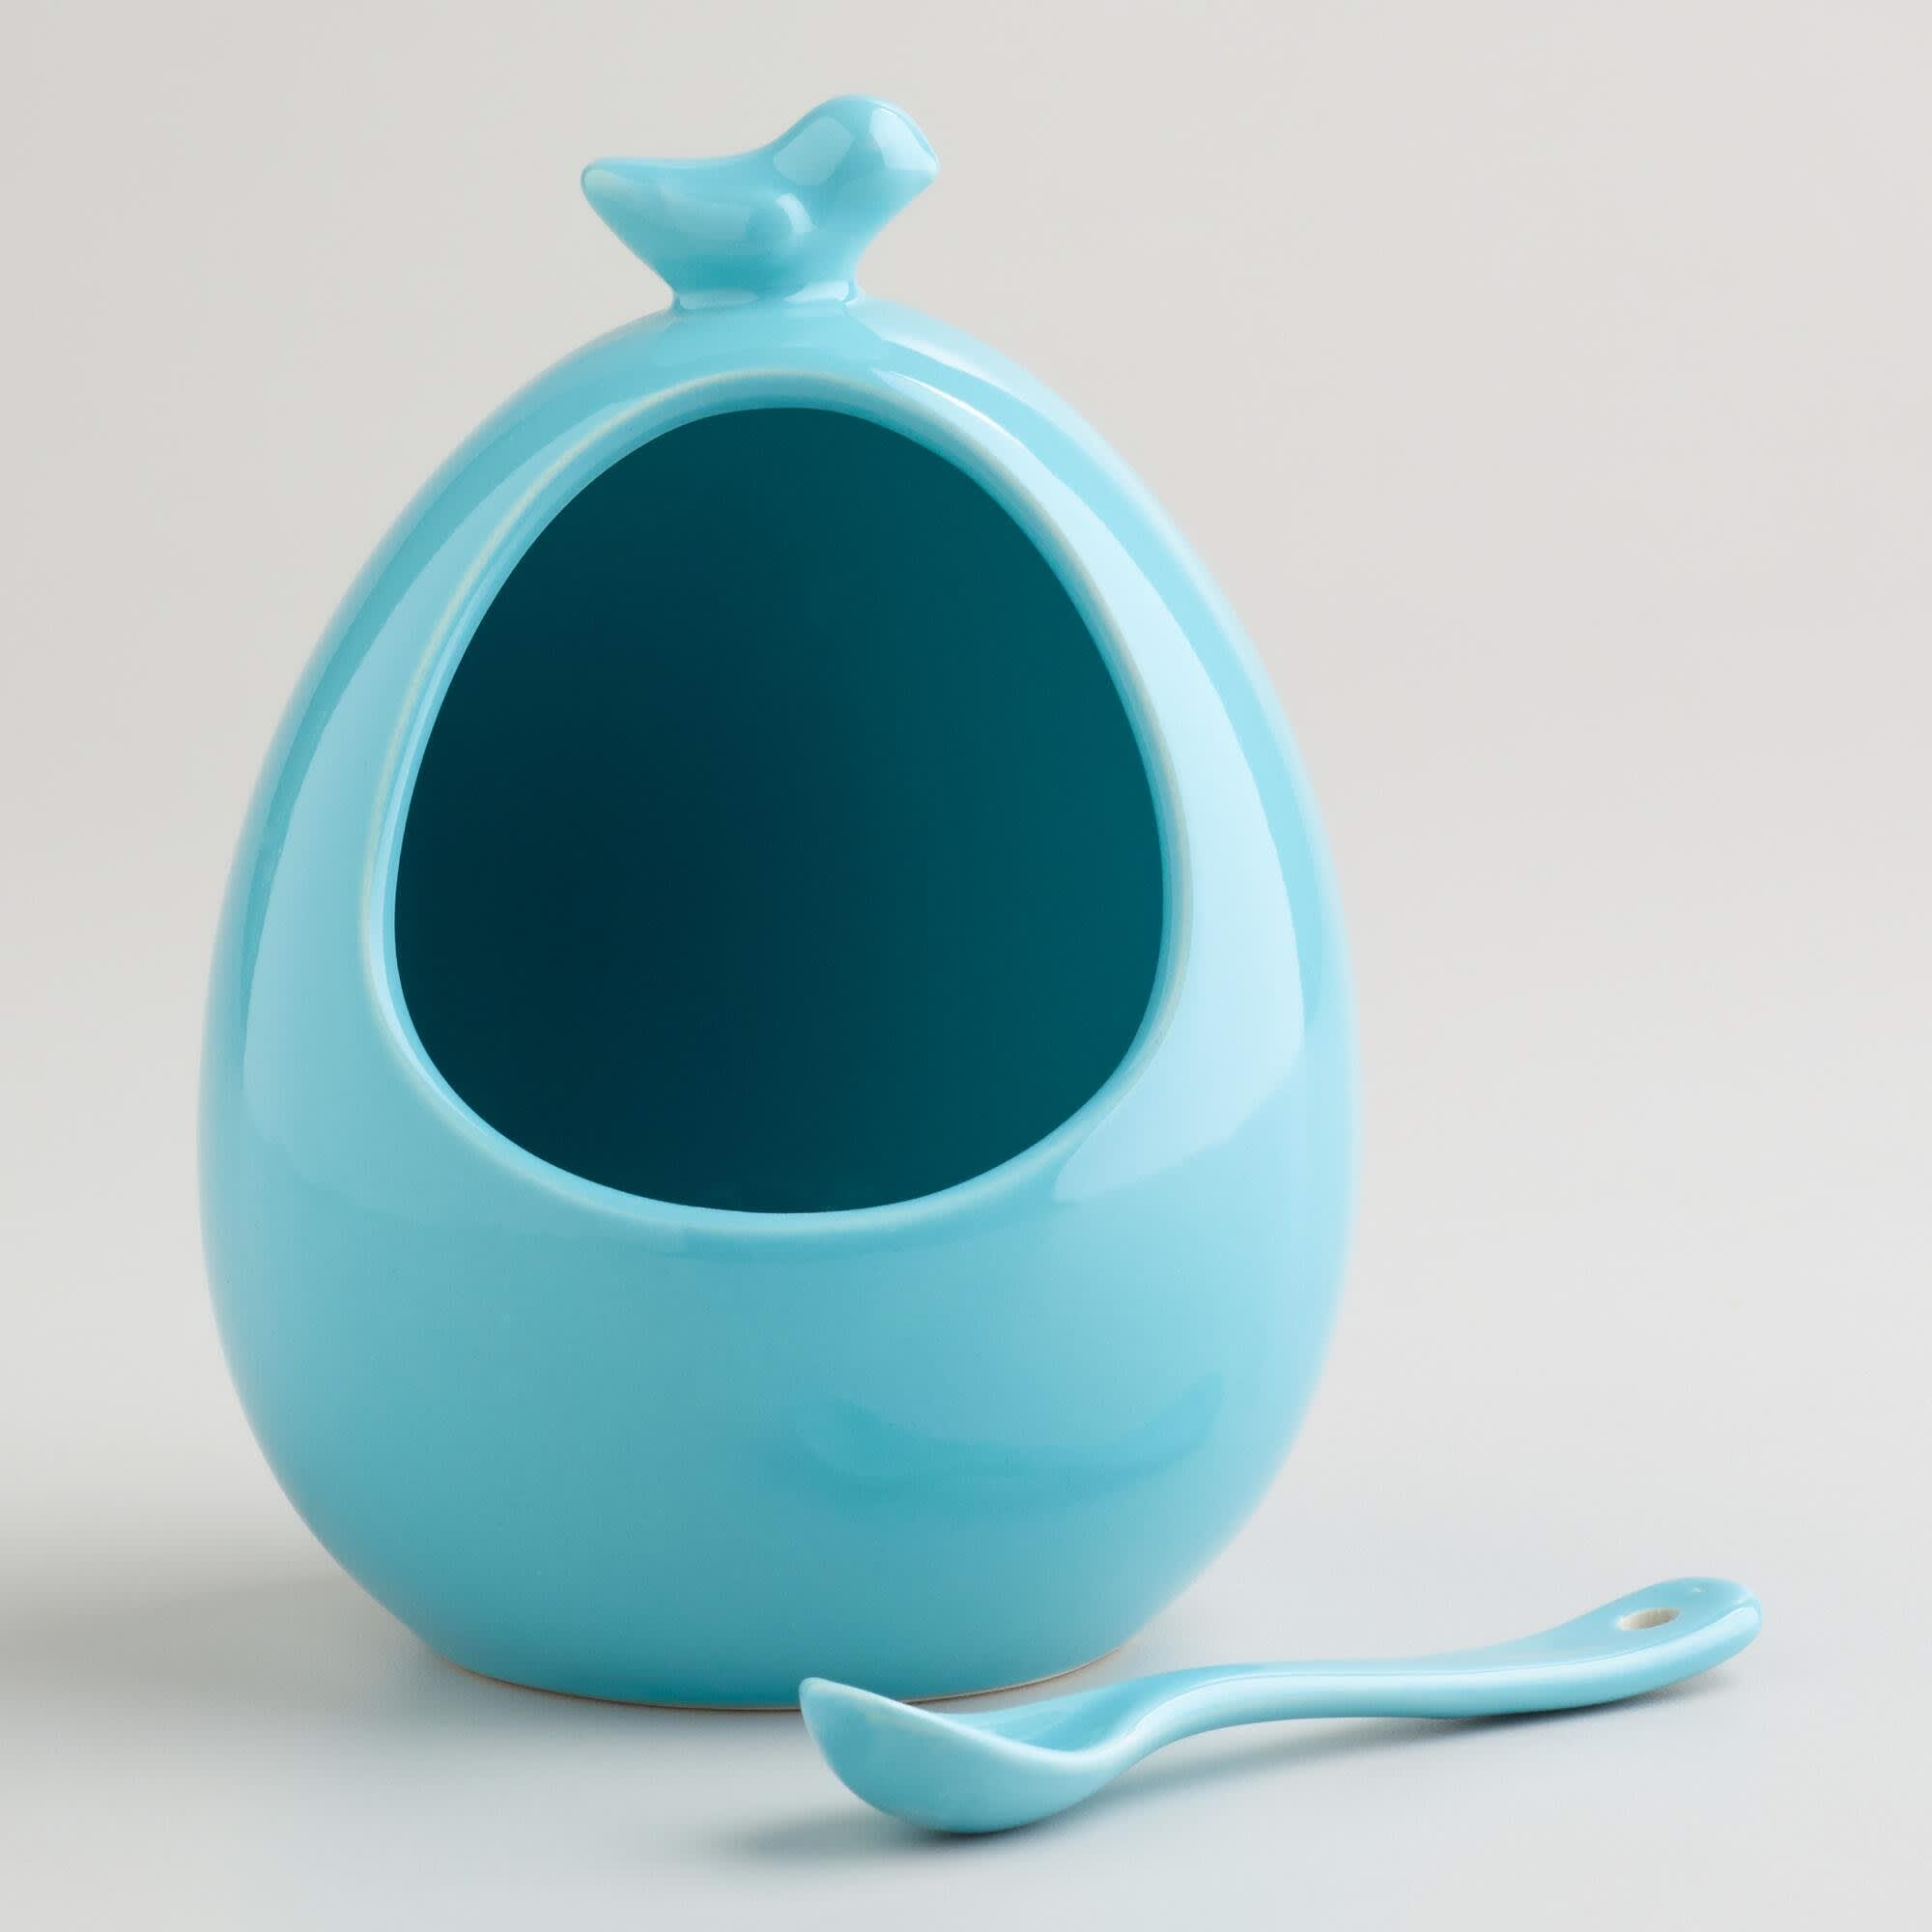 11 Egg-Shaped Kitchen & Dining Goods for Easter: gallery image 3